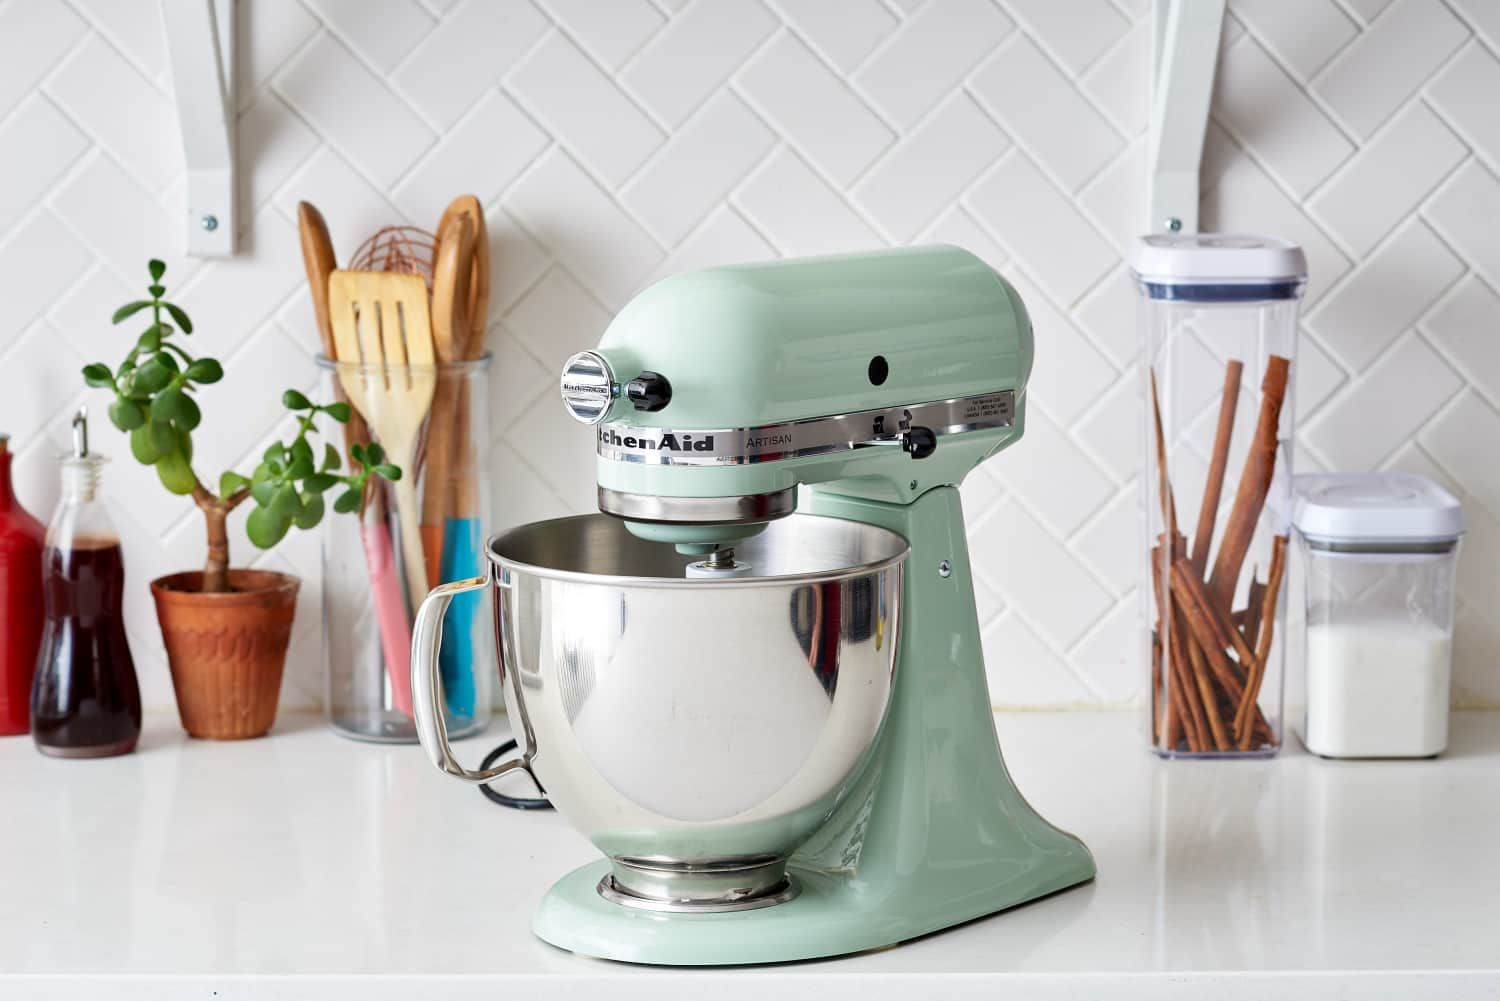 6 Things You Should Know About Your New Stand Mixer